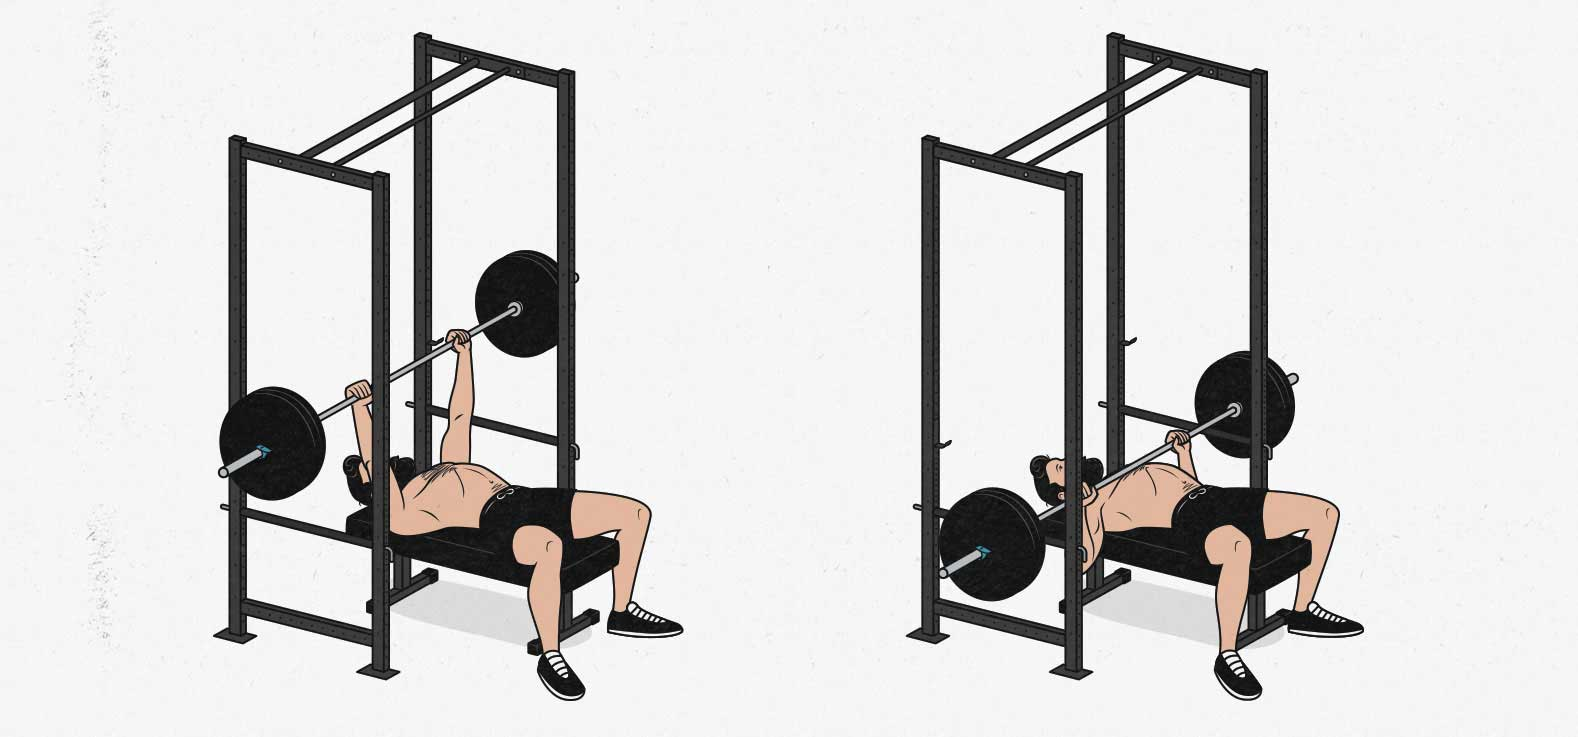 How to barbell bench press safely in a home gym without a spotter in a power cage using safety pins